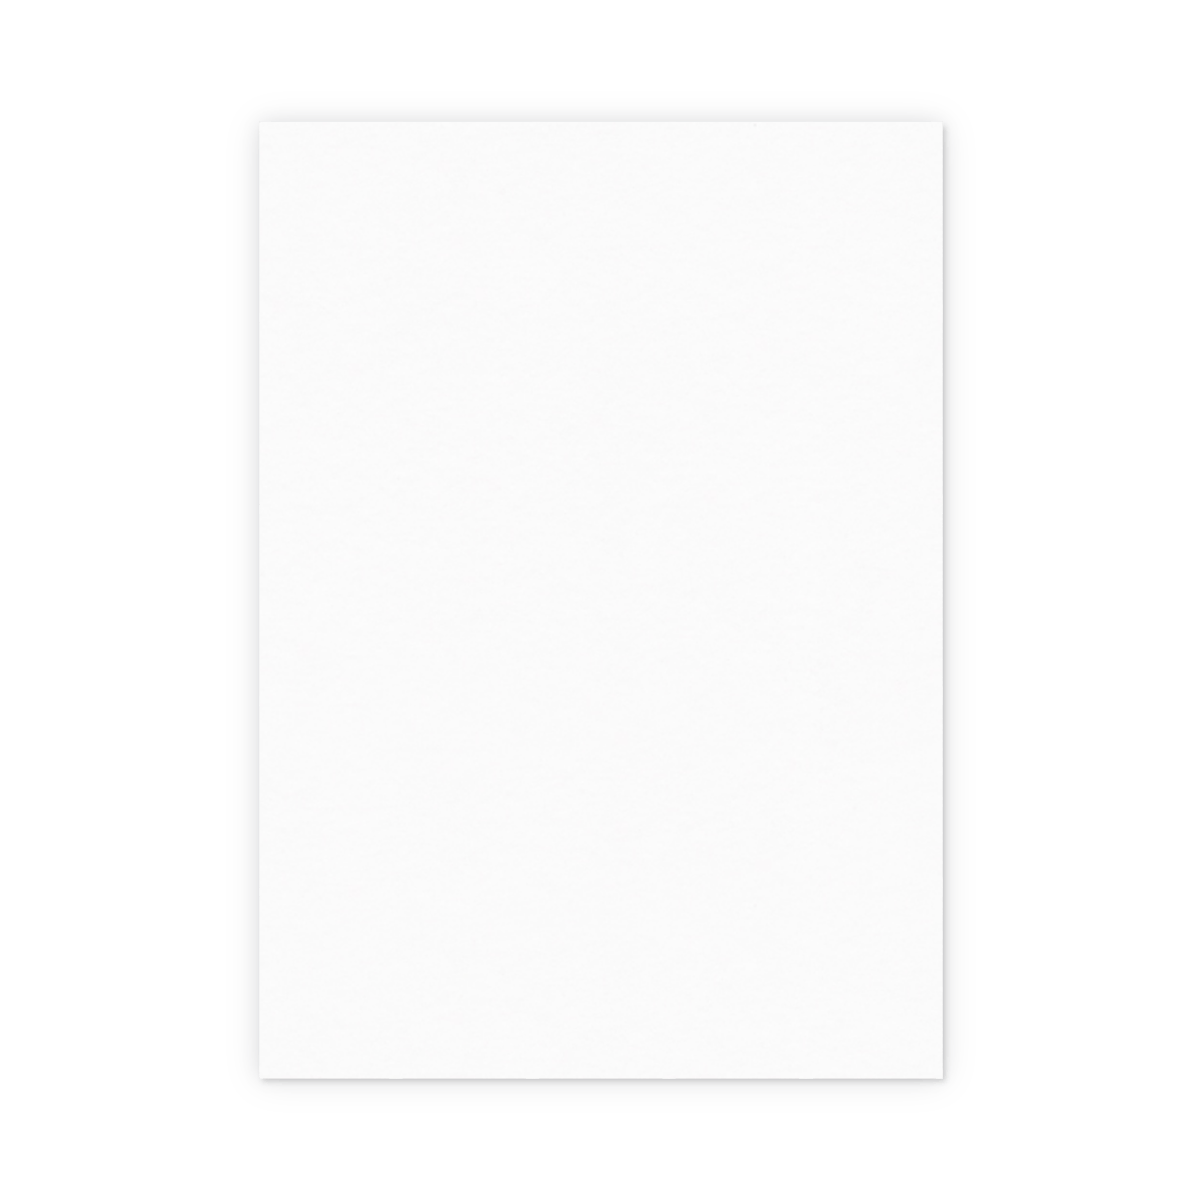 Https%3a%2f%2fwww.papier.com%2fproduct image%2f37209%2f4%2fcalligraphy menu 9366 back 1552419738.png?ixlib=rb 1.1